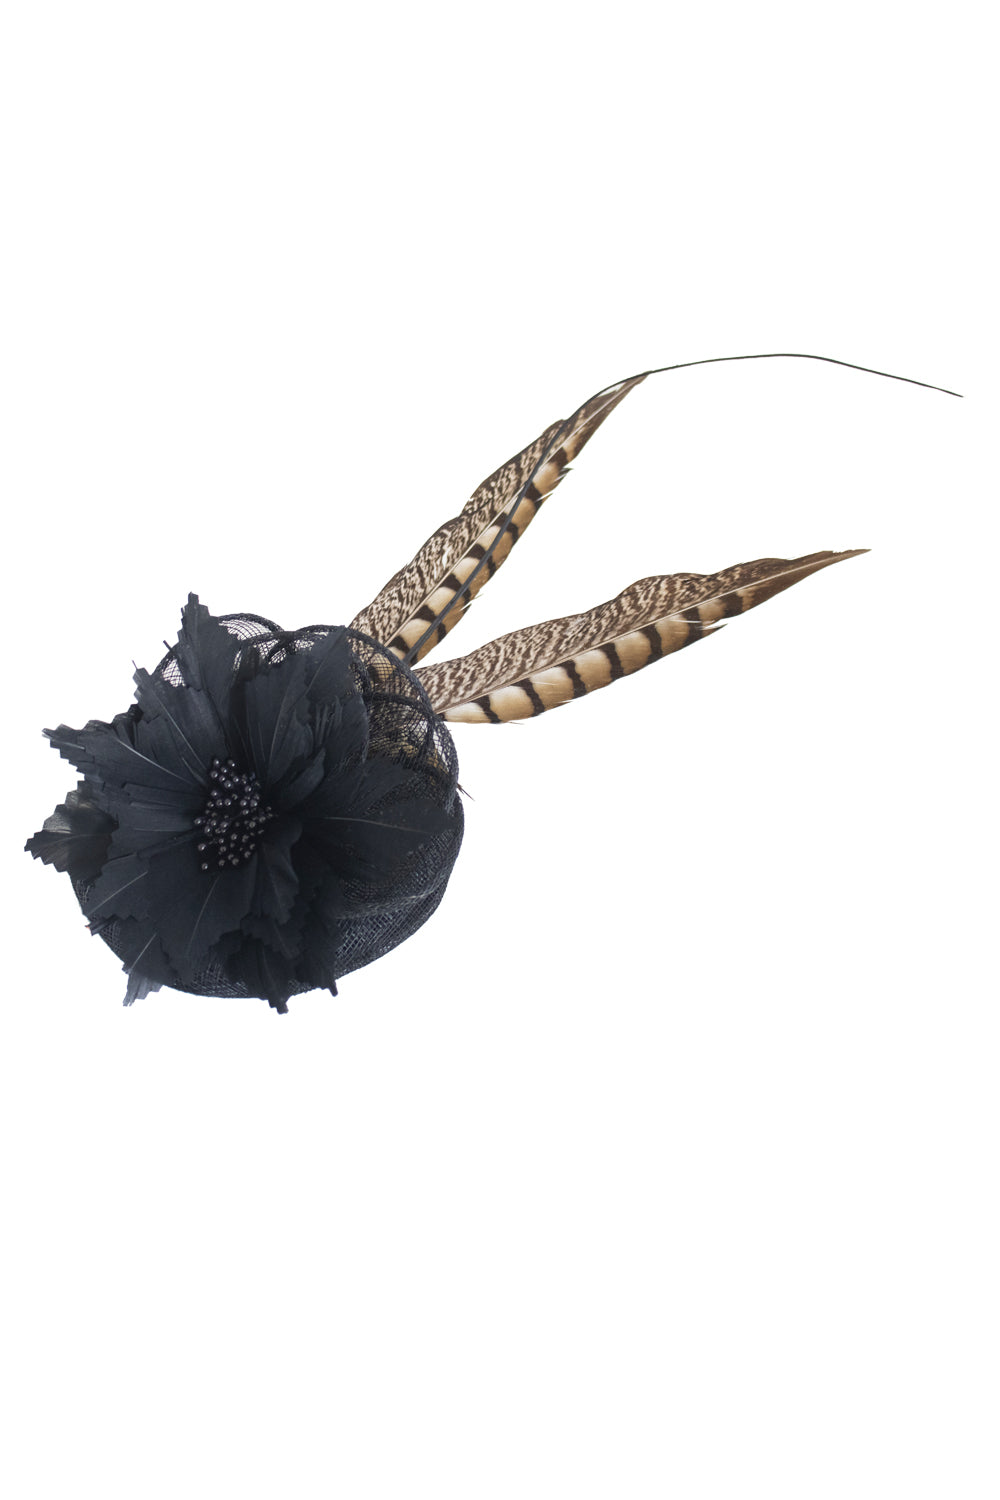 Robin Hood Fascinator | New Zealand Fashion | Head-wear Fascinator | Annah Stretton